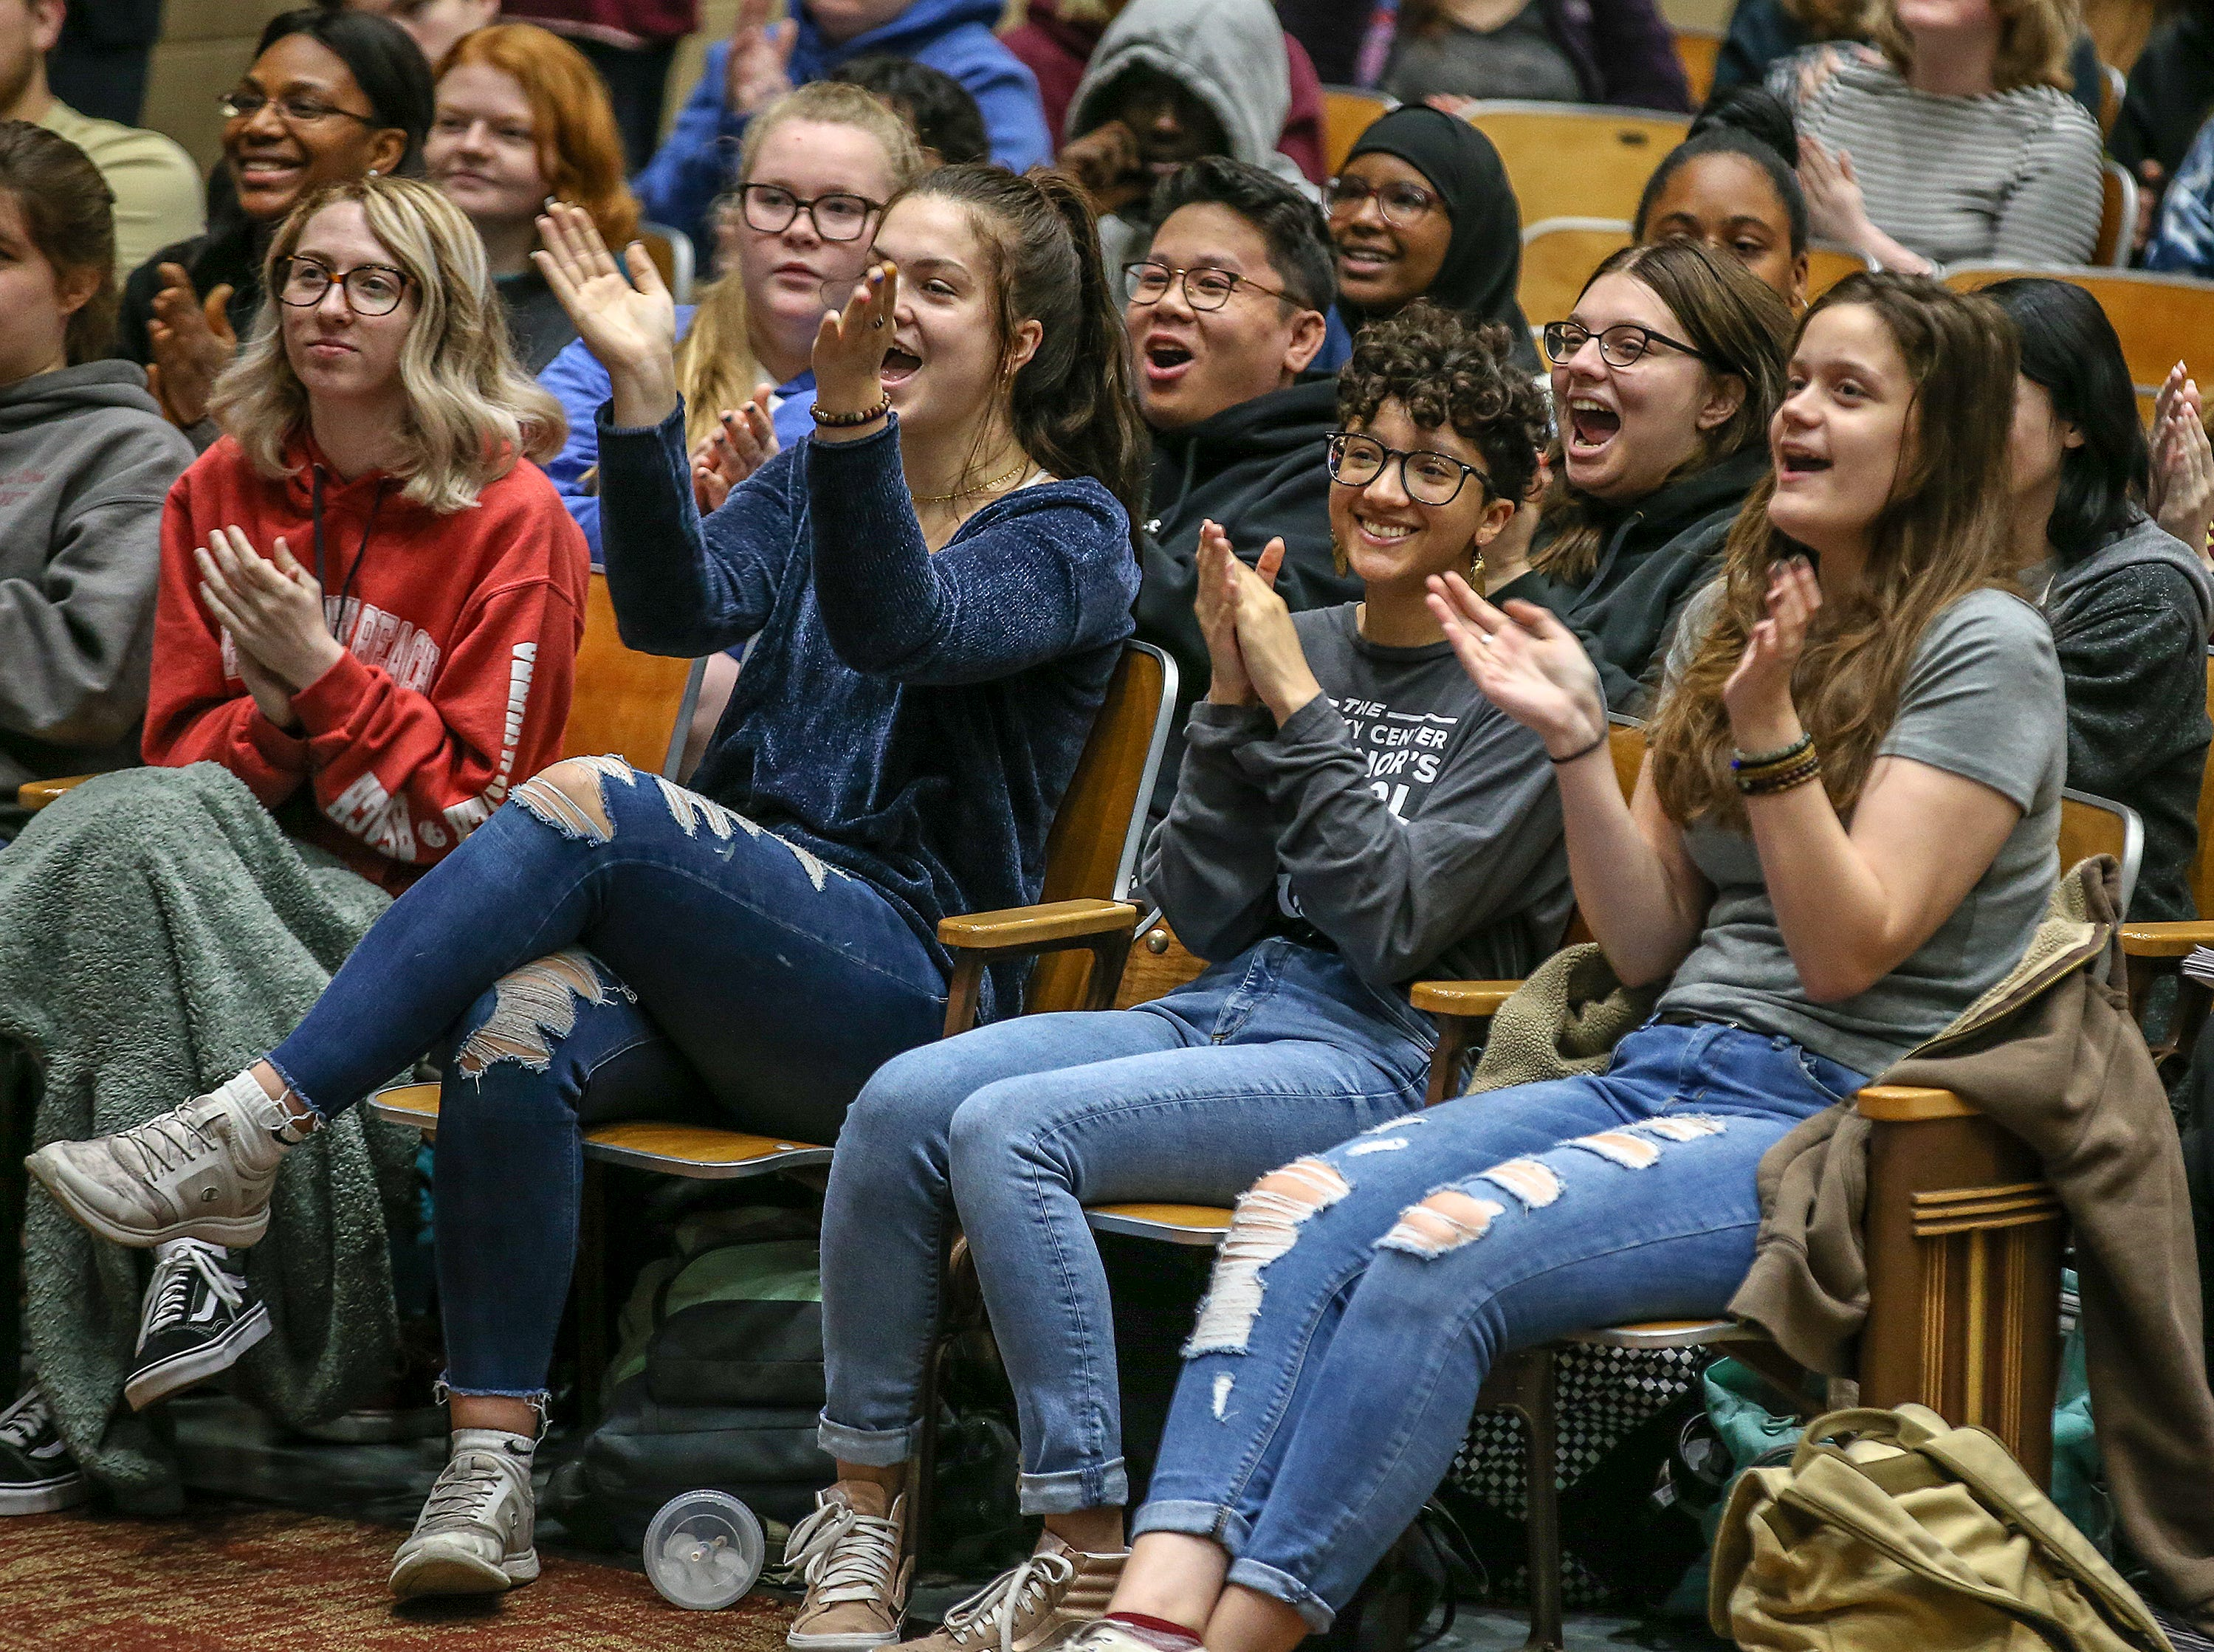 Atherton students cheer during an assembly as part of the Vans Custom Culture contest.  The contest had students use the distinctive footwear to design shoes that depict their state.  Atherton was one of the runner ups and received $10,000 from Vans.May 14, 2019